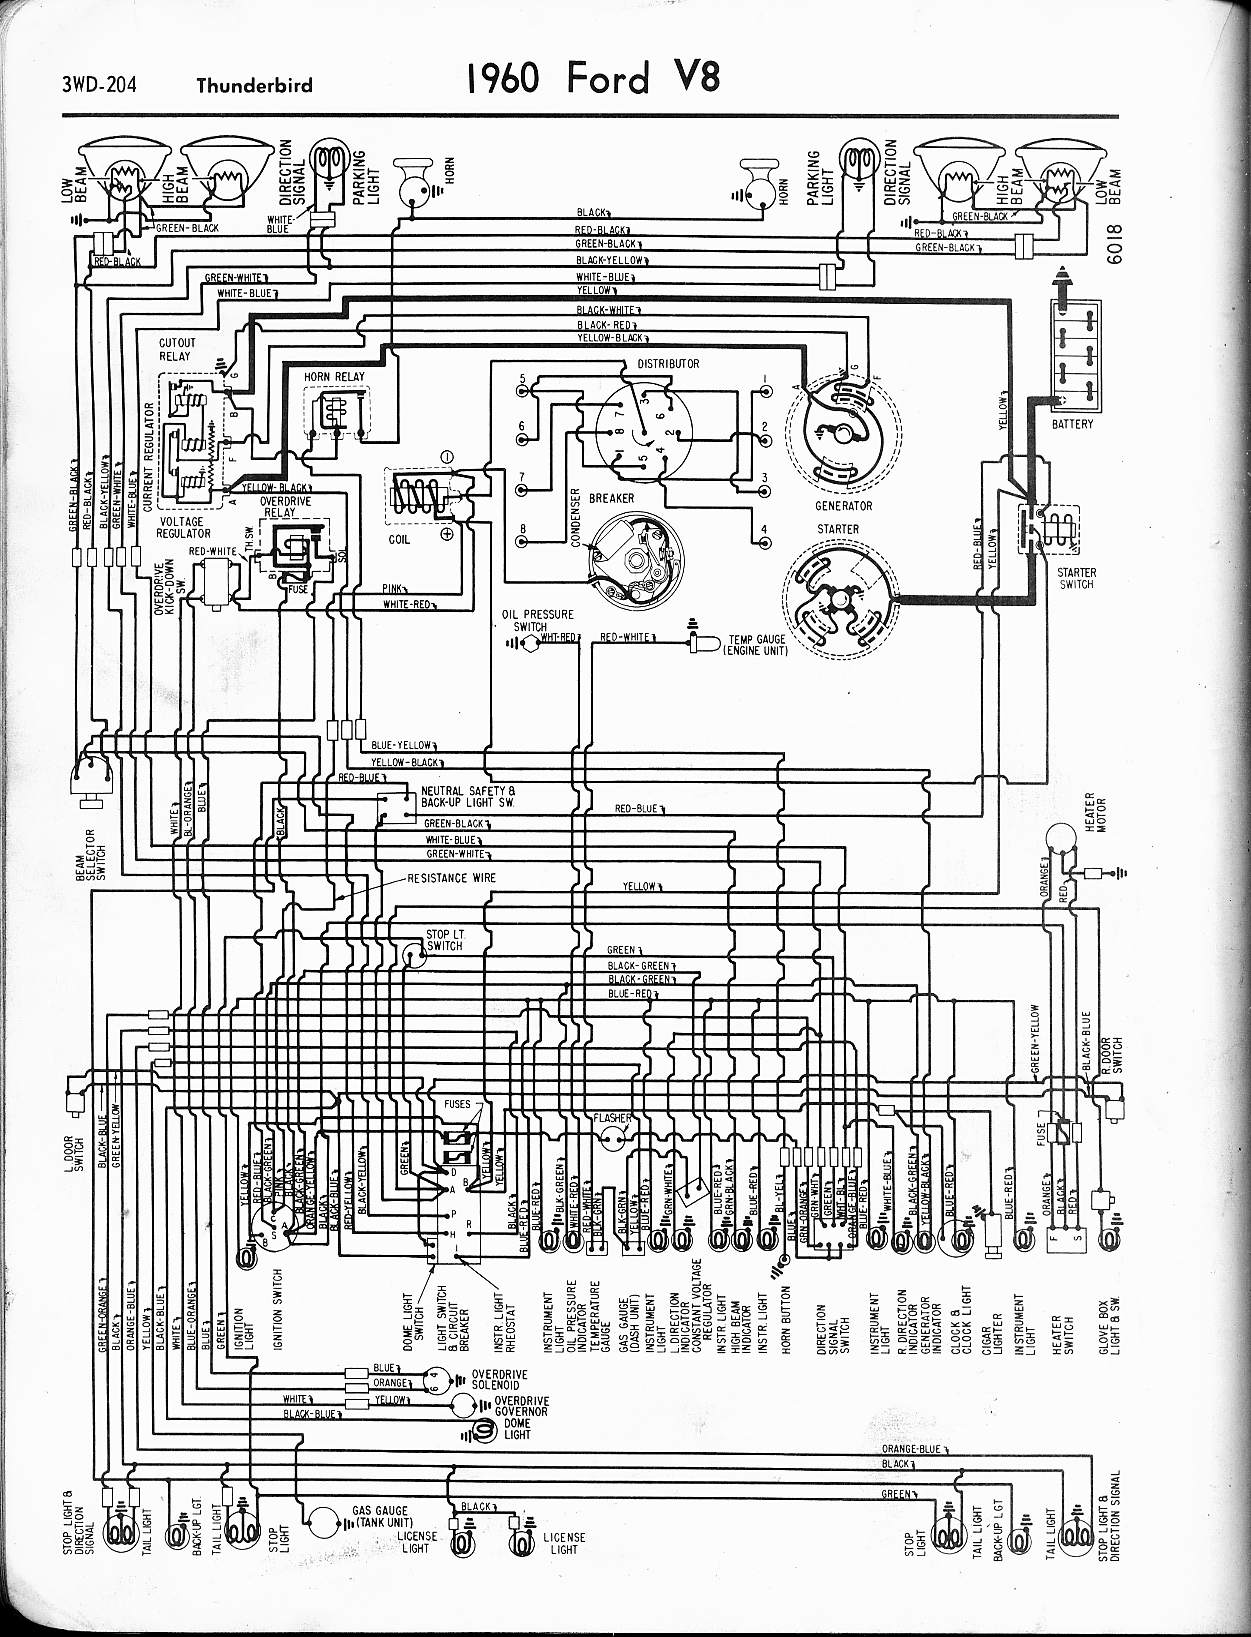 Stupendous Images Of 1961 Lincoln Continental Wiring Diagram Wiring Library Wiring Cloud Staixuggs Outletorg